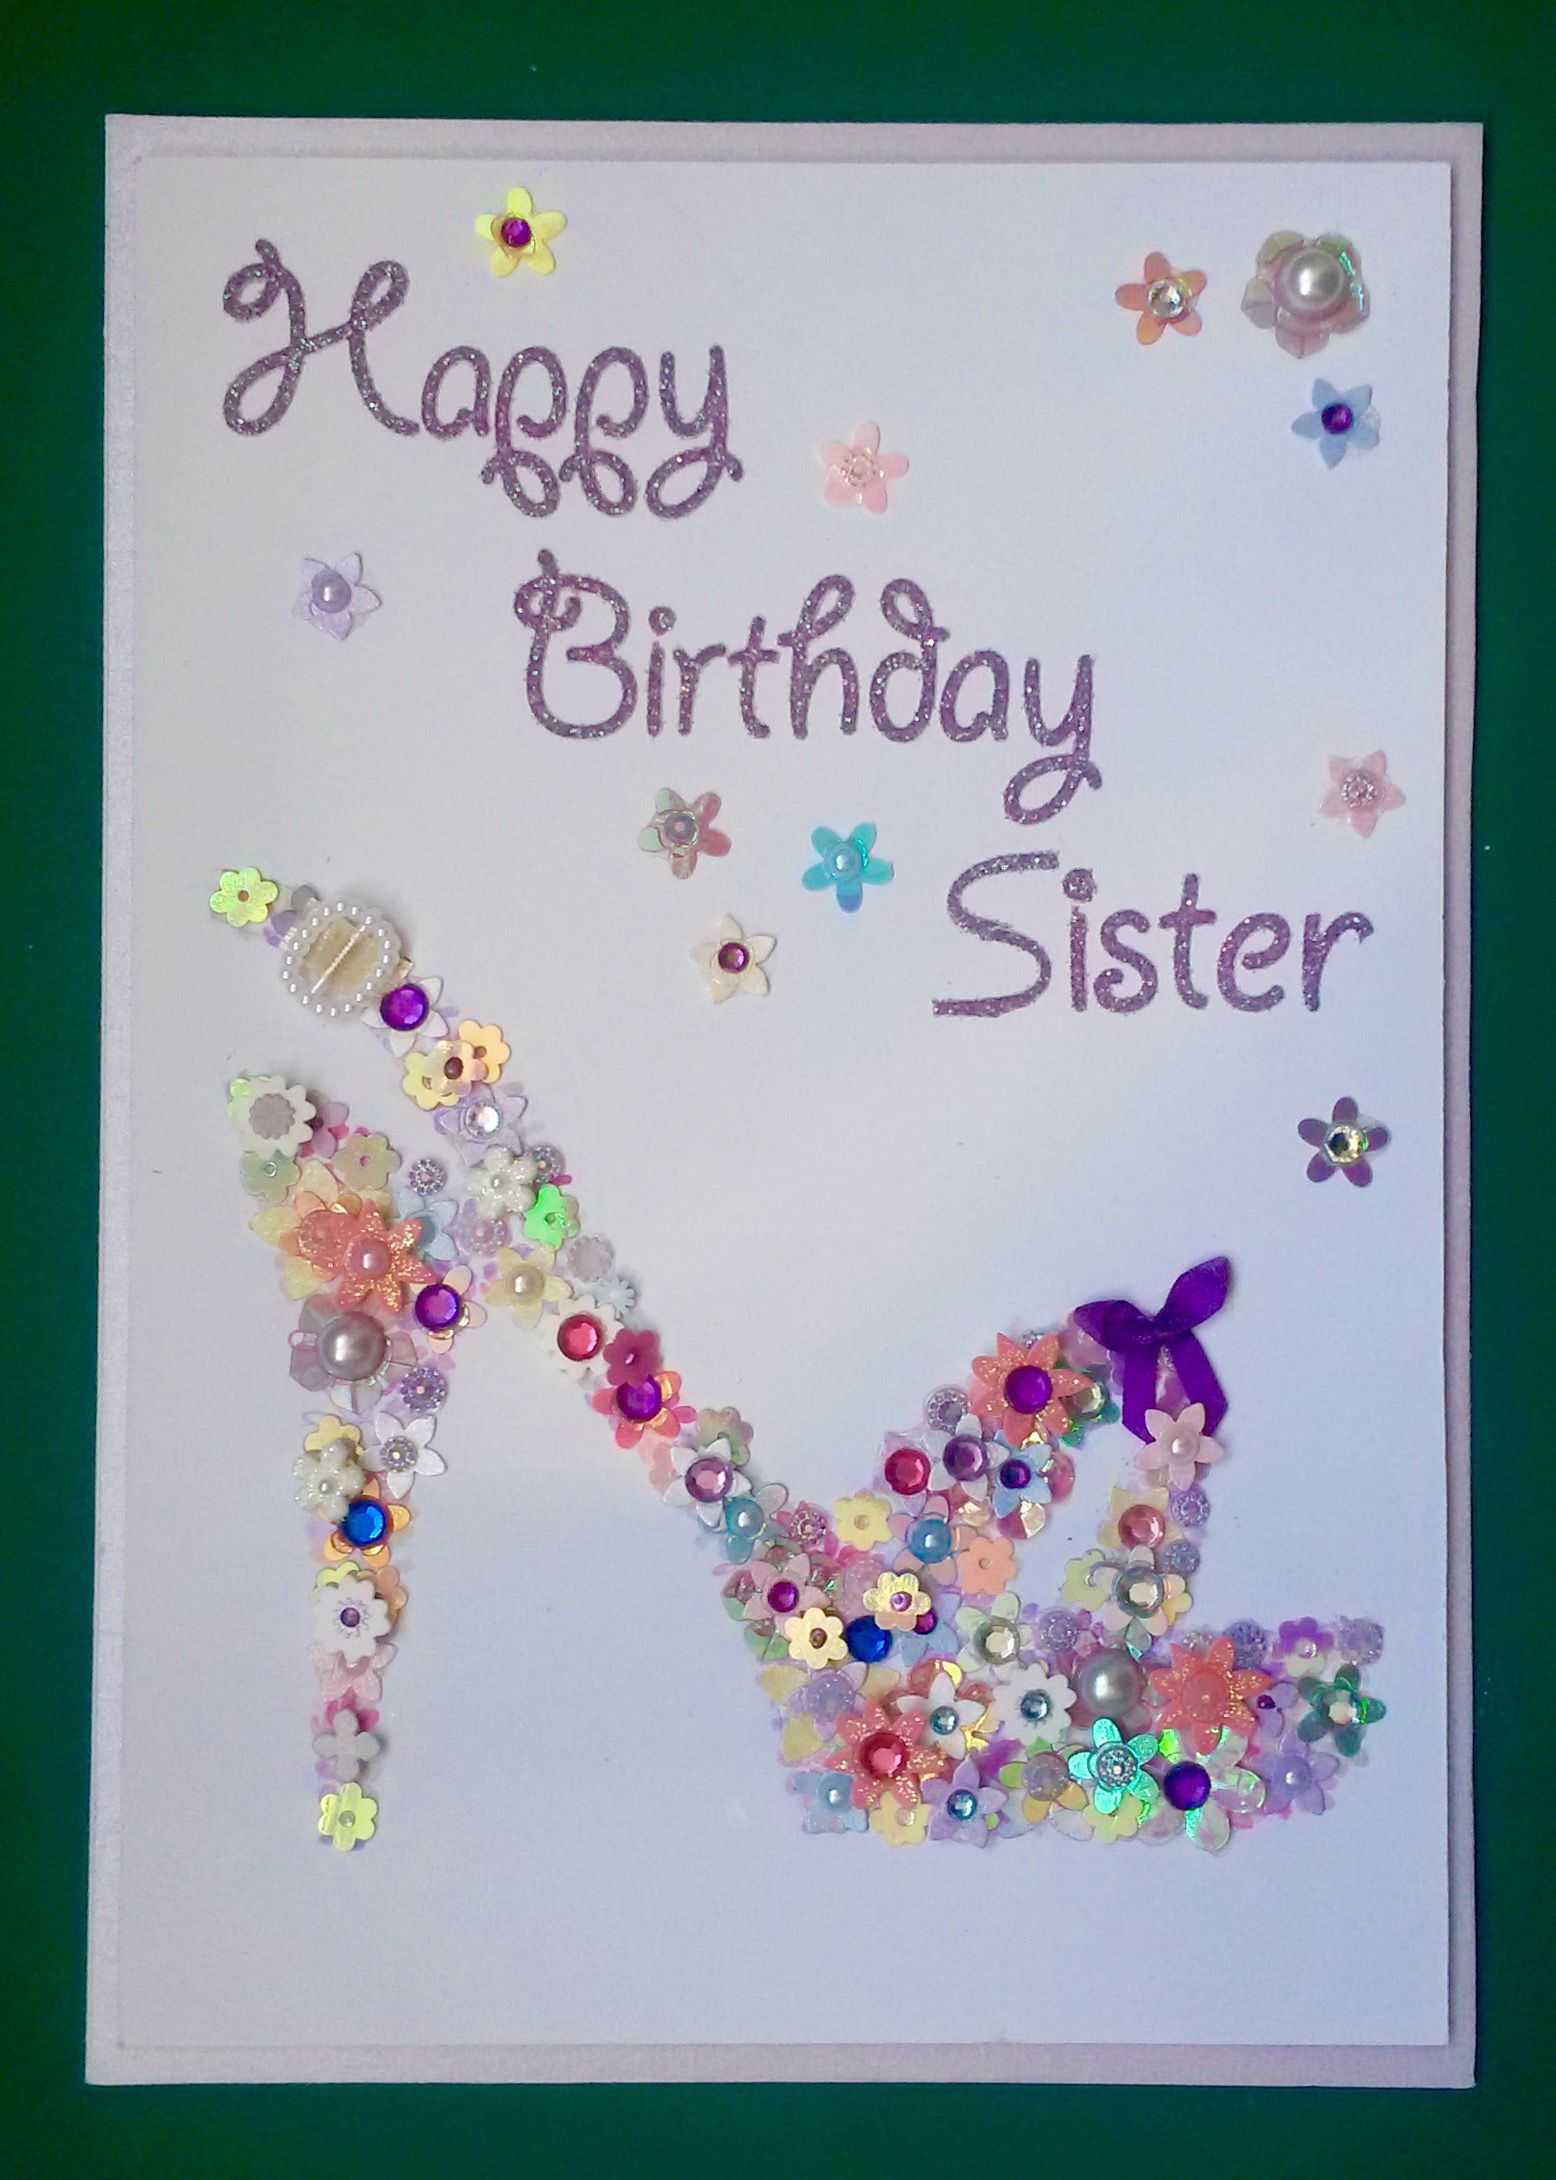 Happy Birthday Sister Floral Shoe Card Handmade Cards Inspired By Handmadewithheart12 Ebaycouk